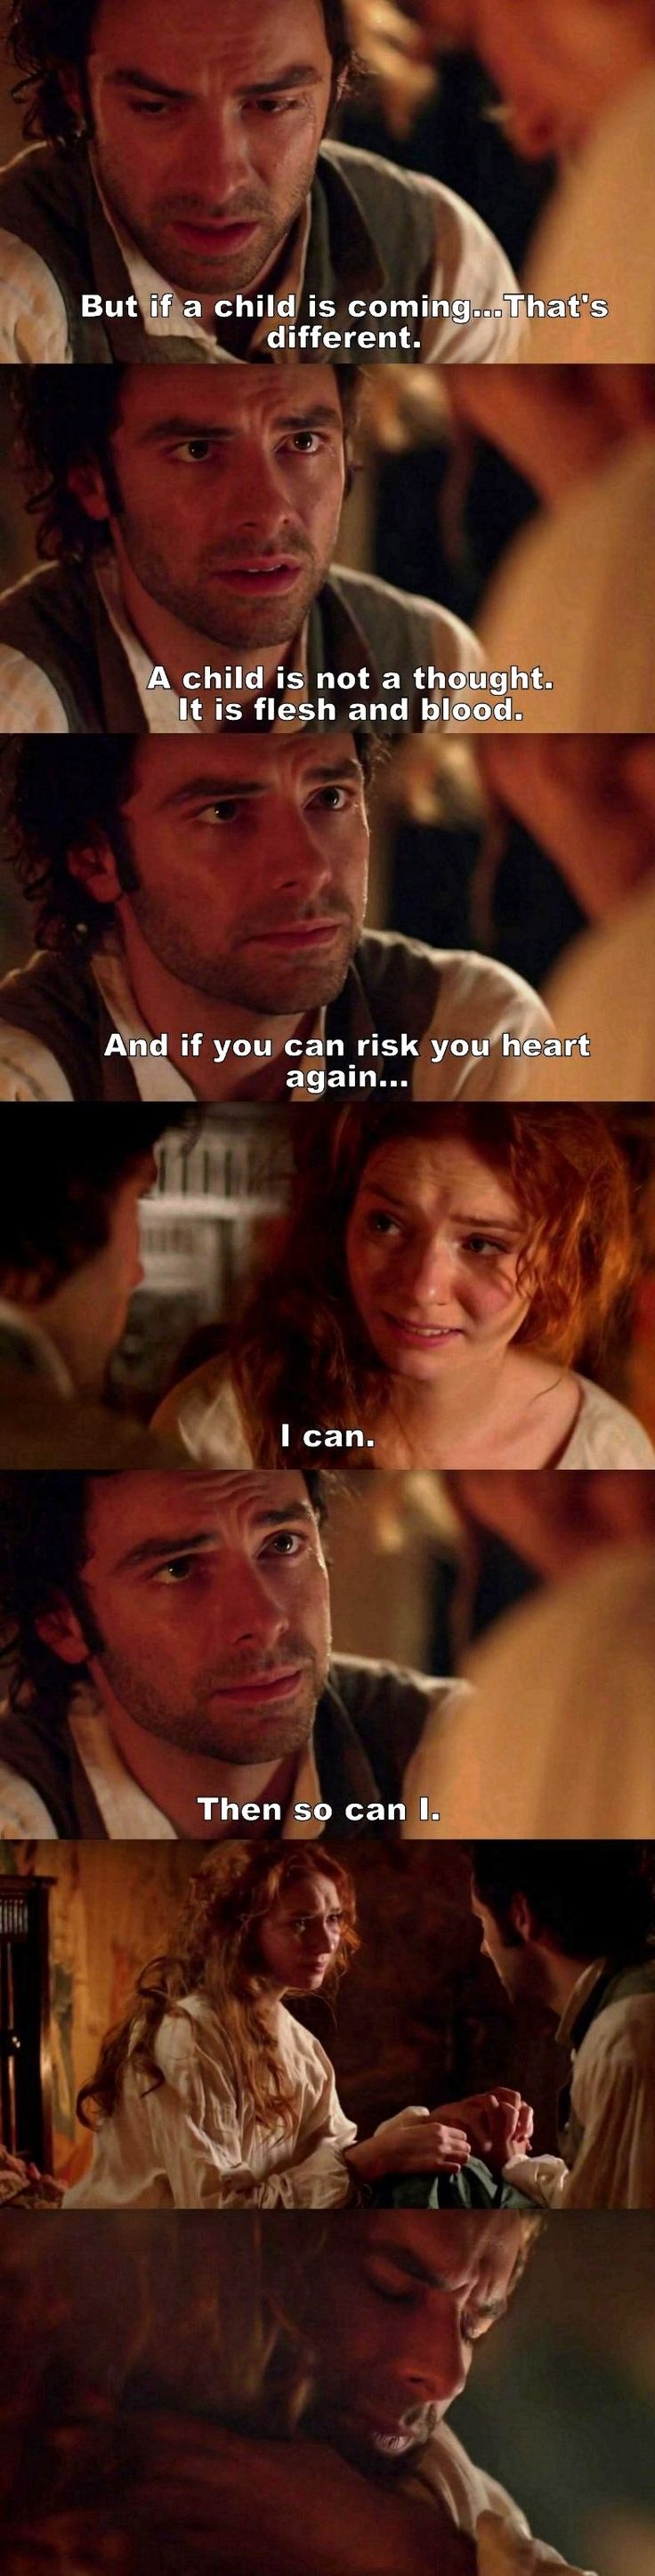 """A child is not a thought. It is flesh and blood. And if you can risk your heart again..."" - Ross and Demelza #Poldark"